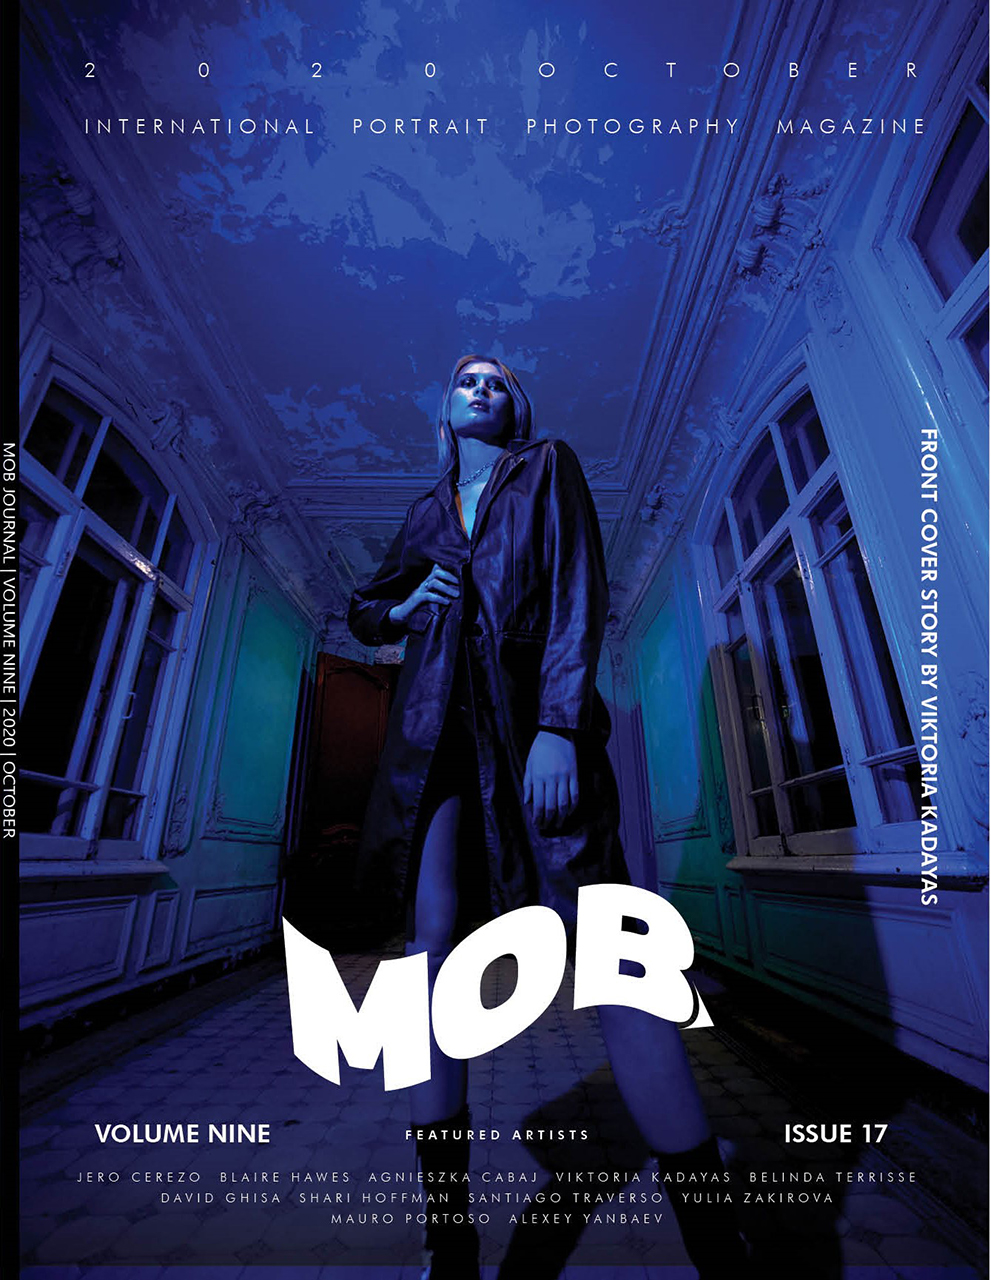 1Mob Journal Volume 9-issue-17-cover-1